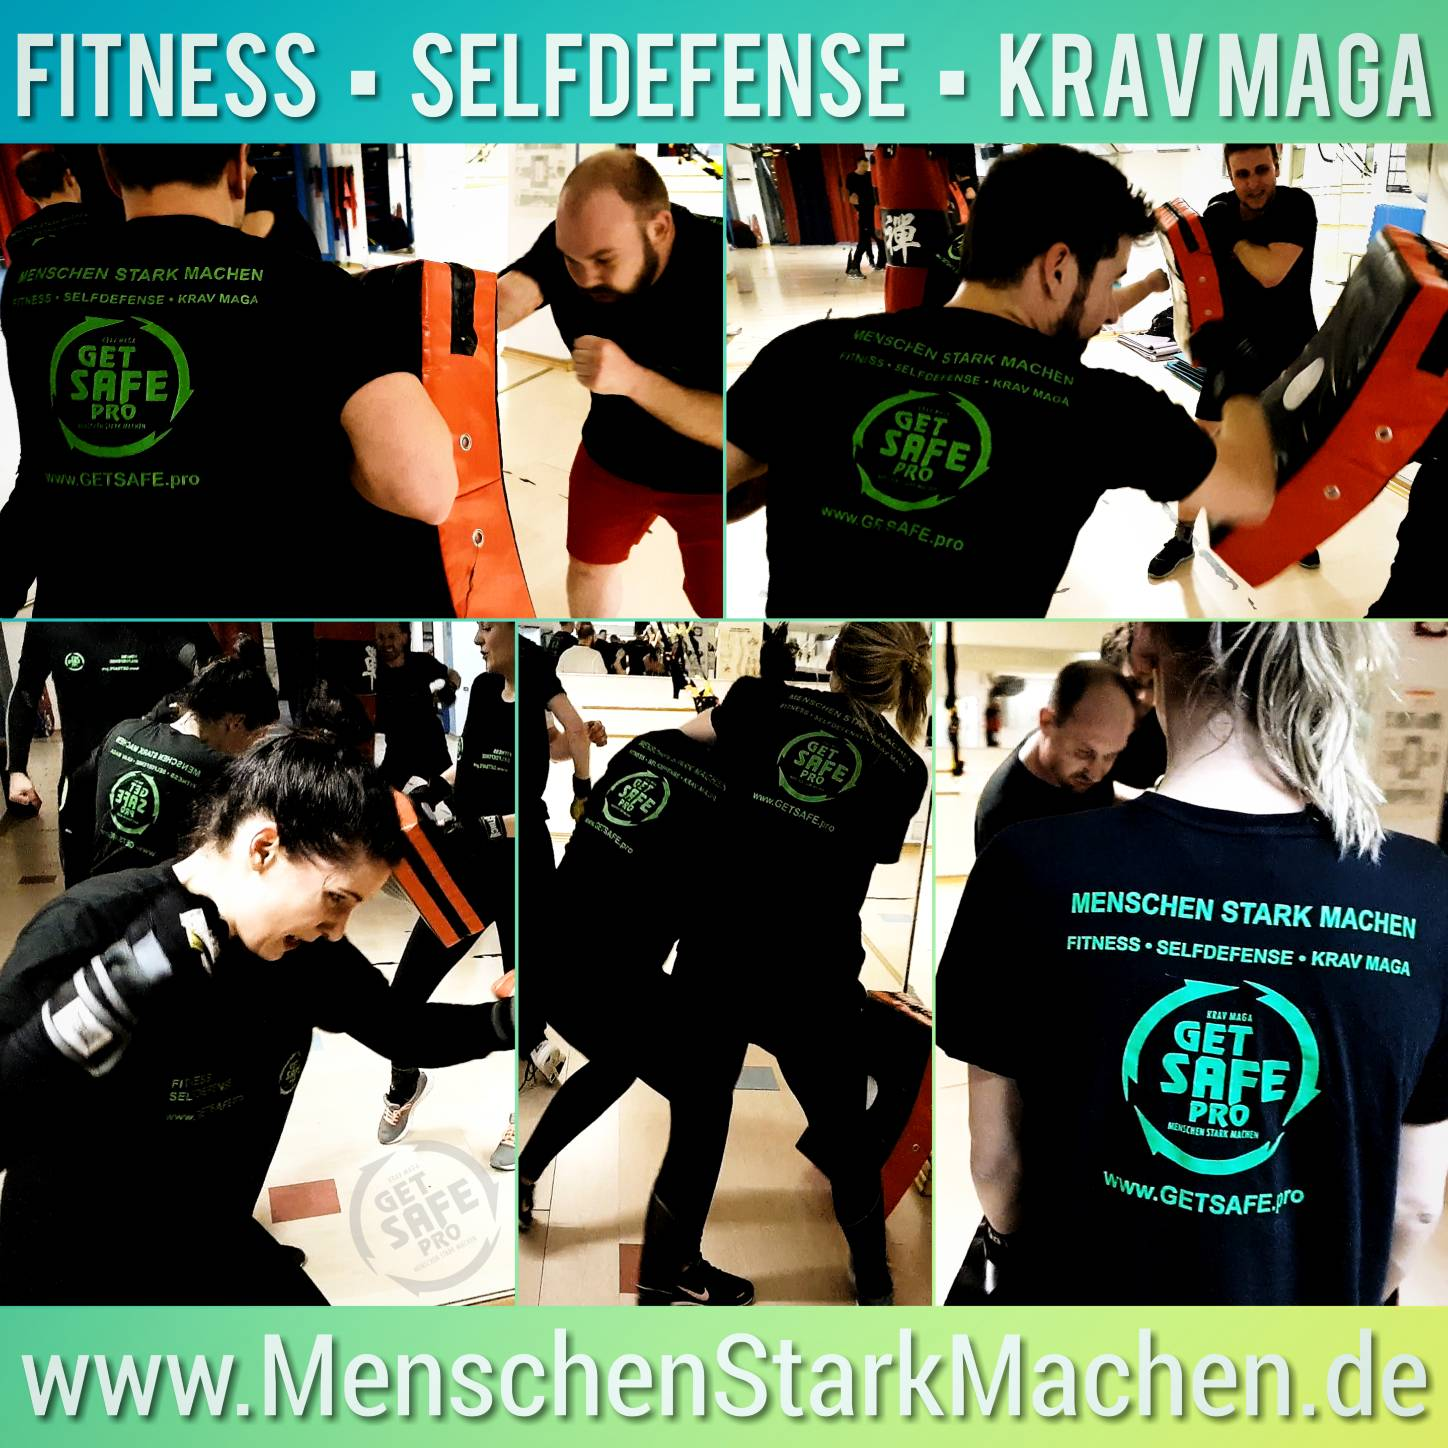 GETSAFEpro Krav Maga Training Mainz Selbstverteidigung Fitness-Center Mainz City (55)